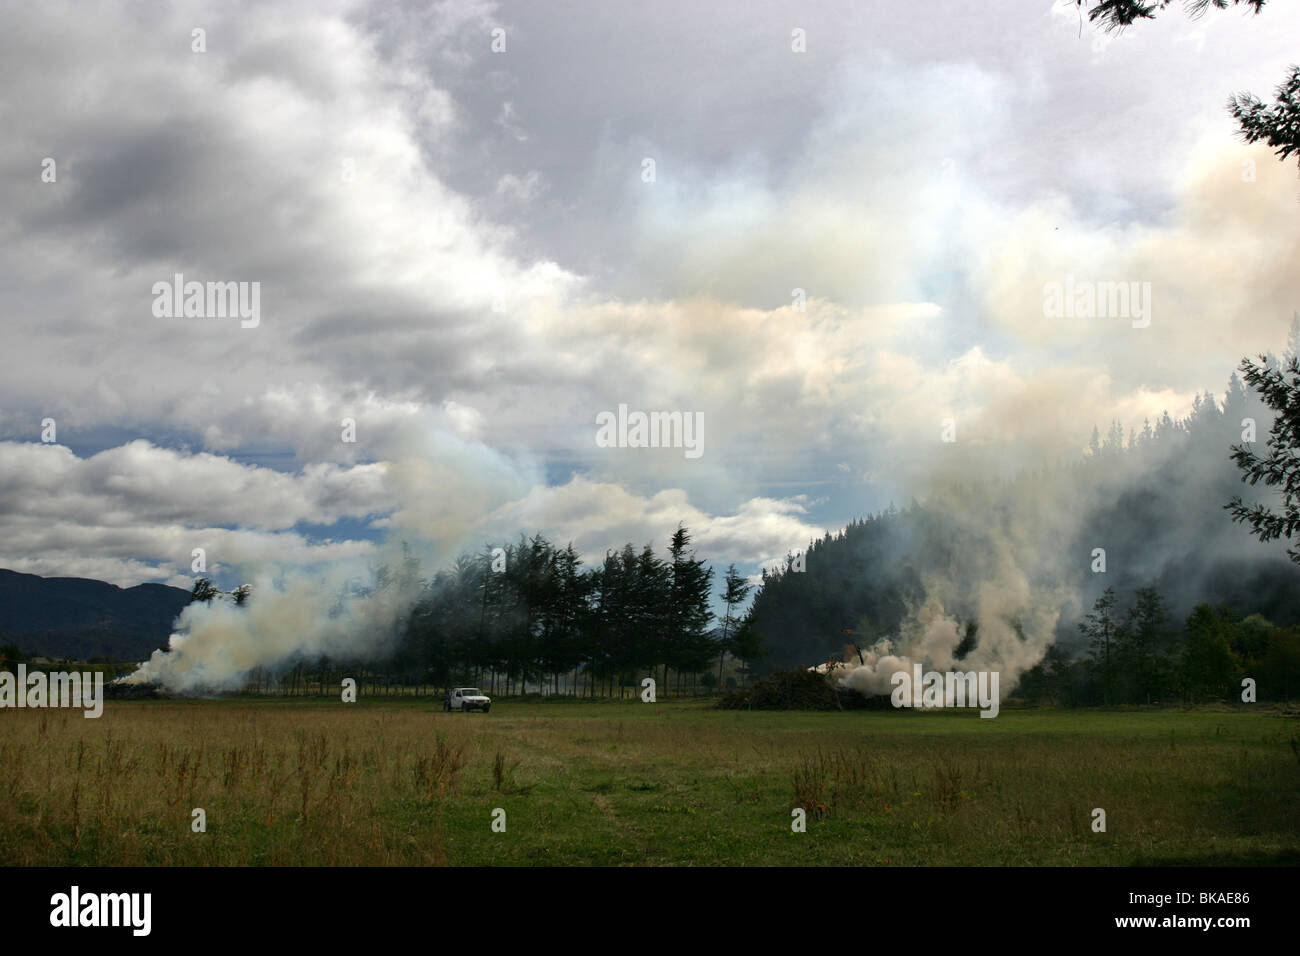 a farmer burns off foliage and branches in a field near Motueka, Nelson, New Zealand - Stock Image